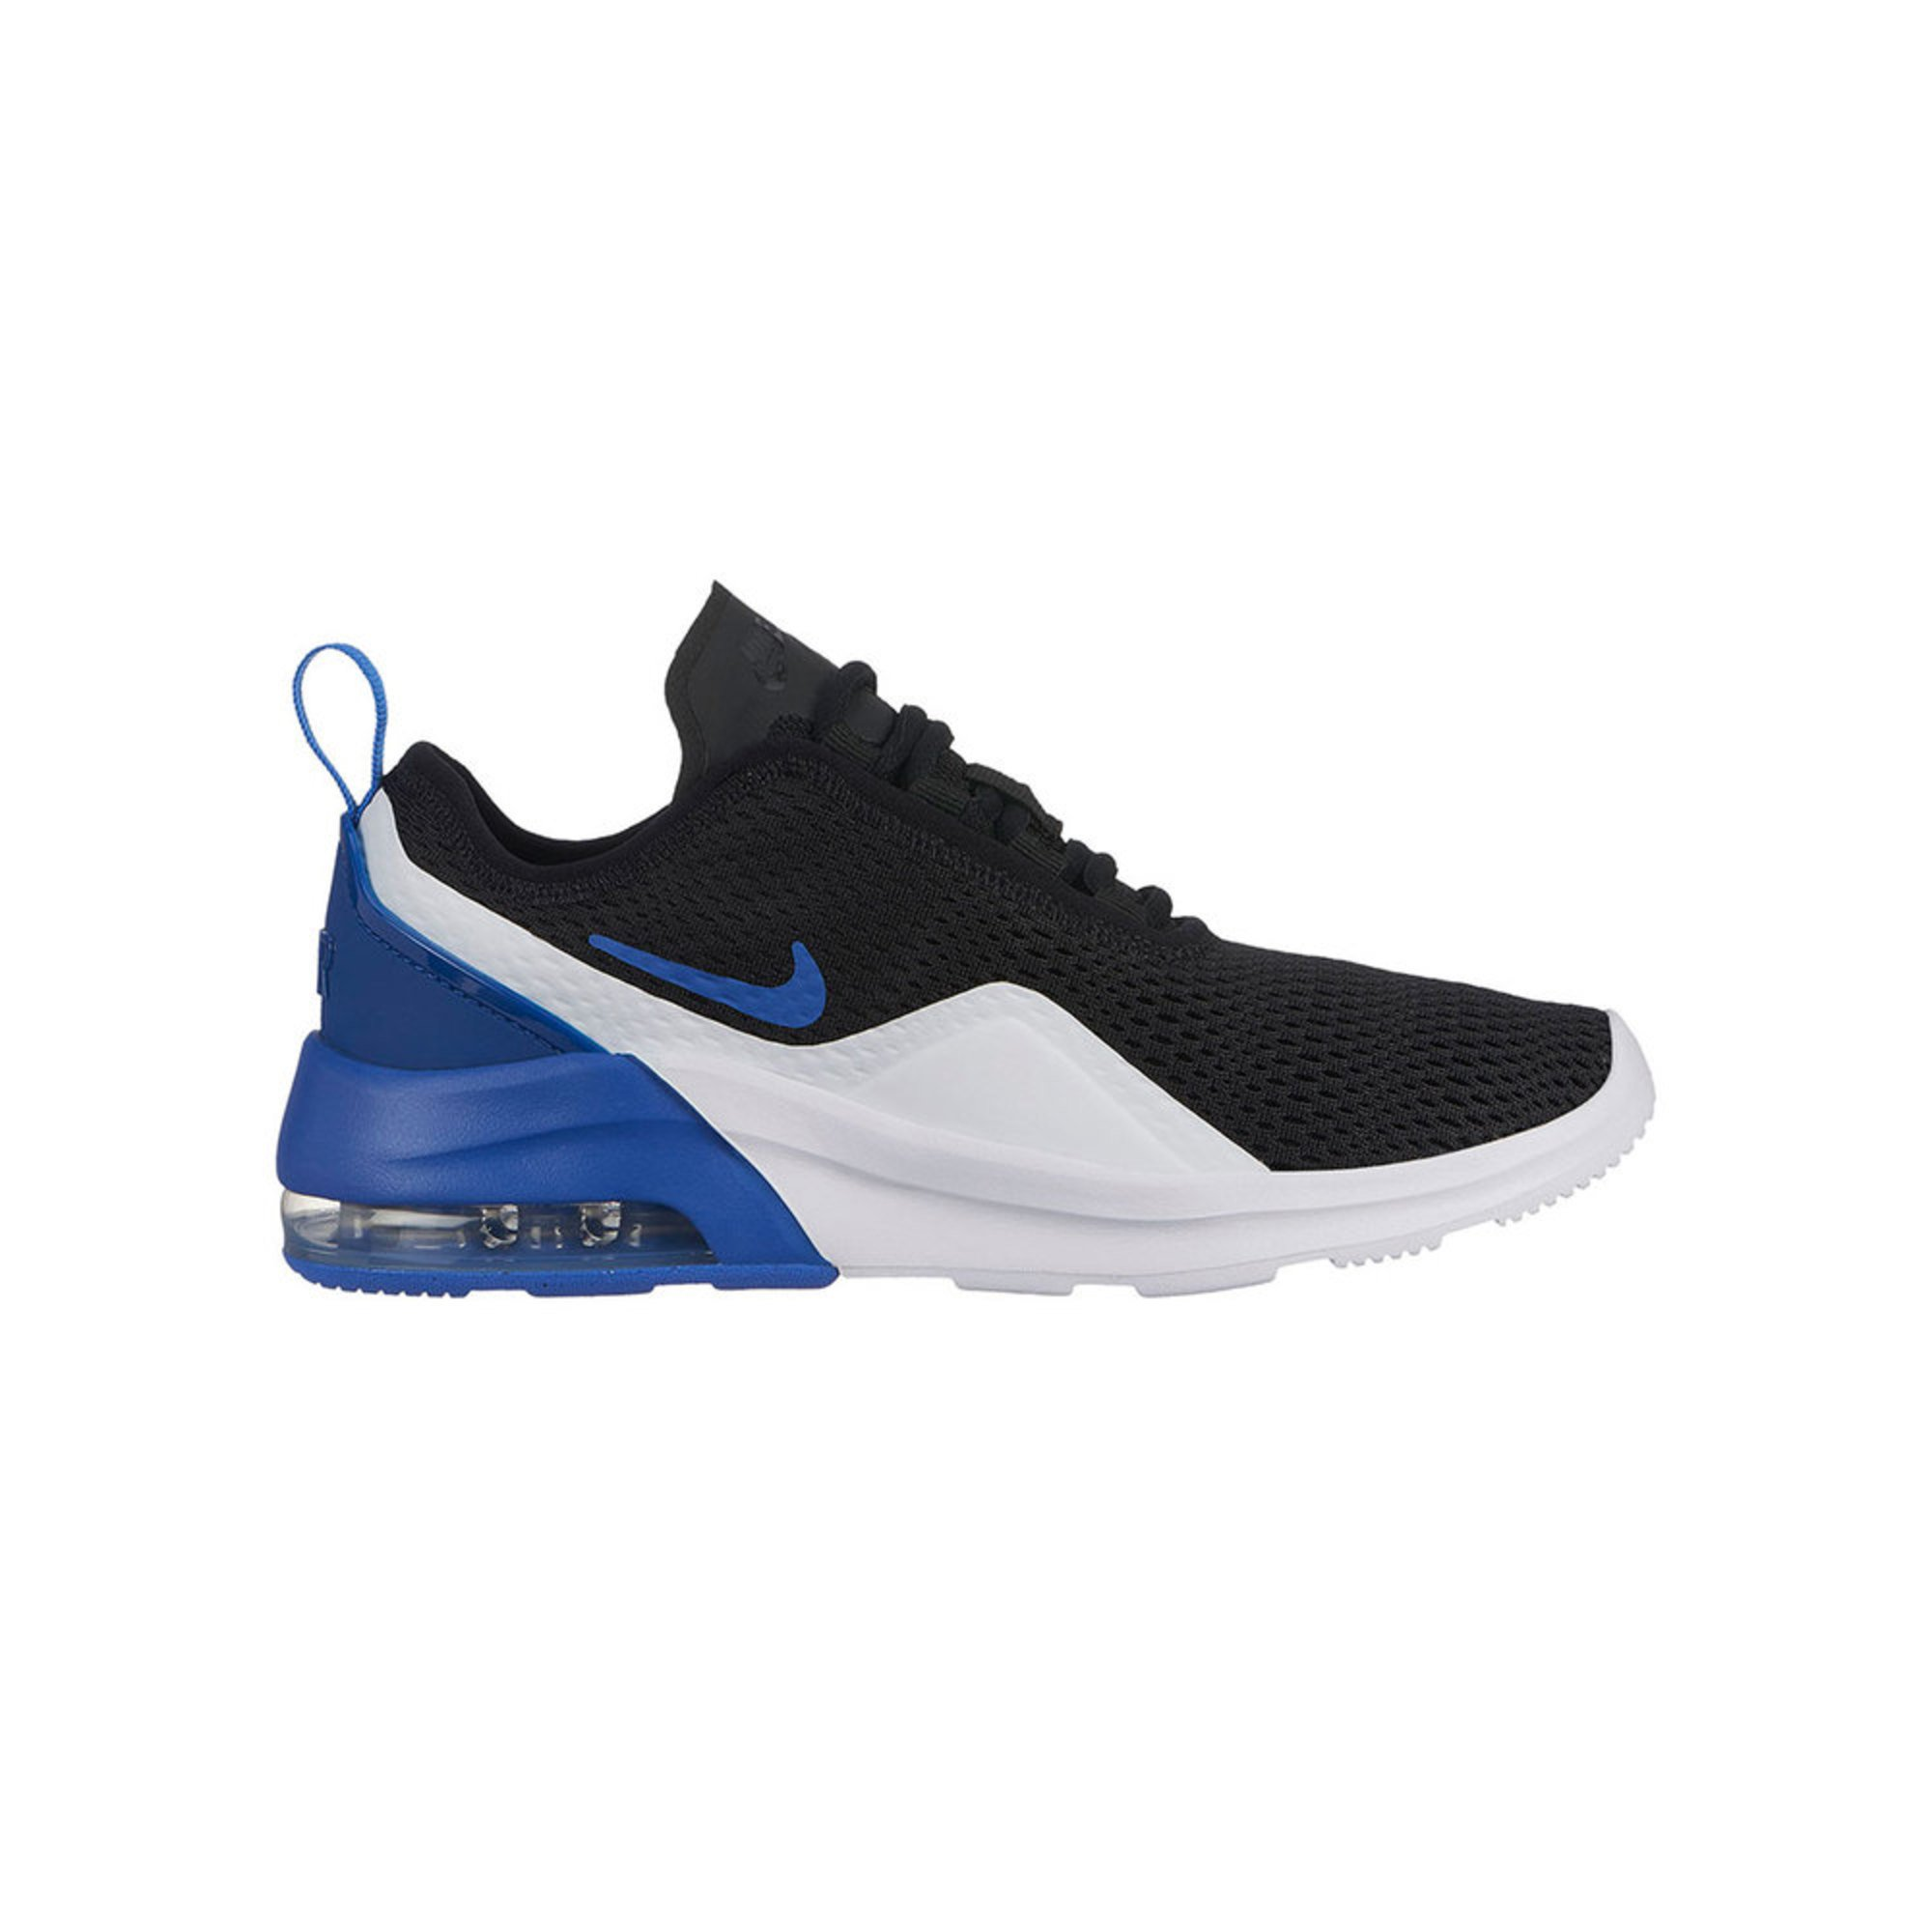 on sale f3f0e 80b58 Nike. Nike Boys Air Max Motion 2 Running Shoe (Youth)